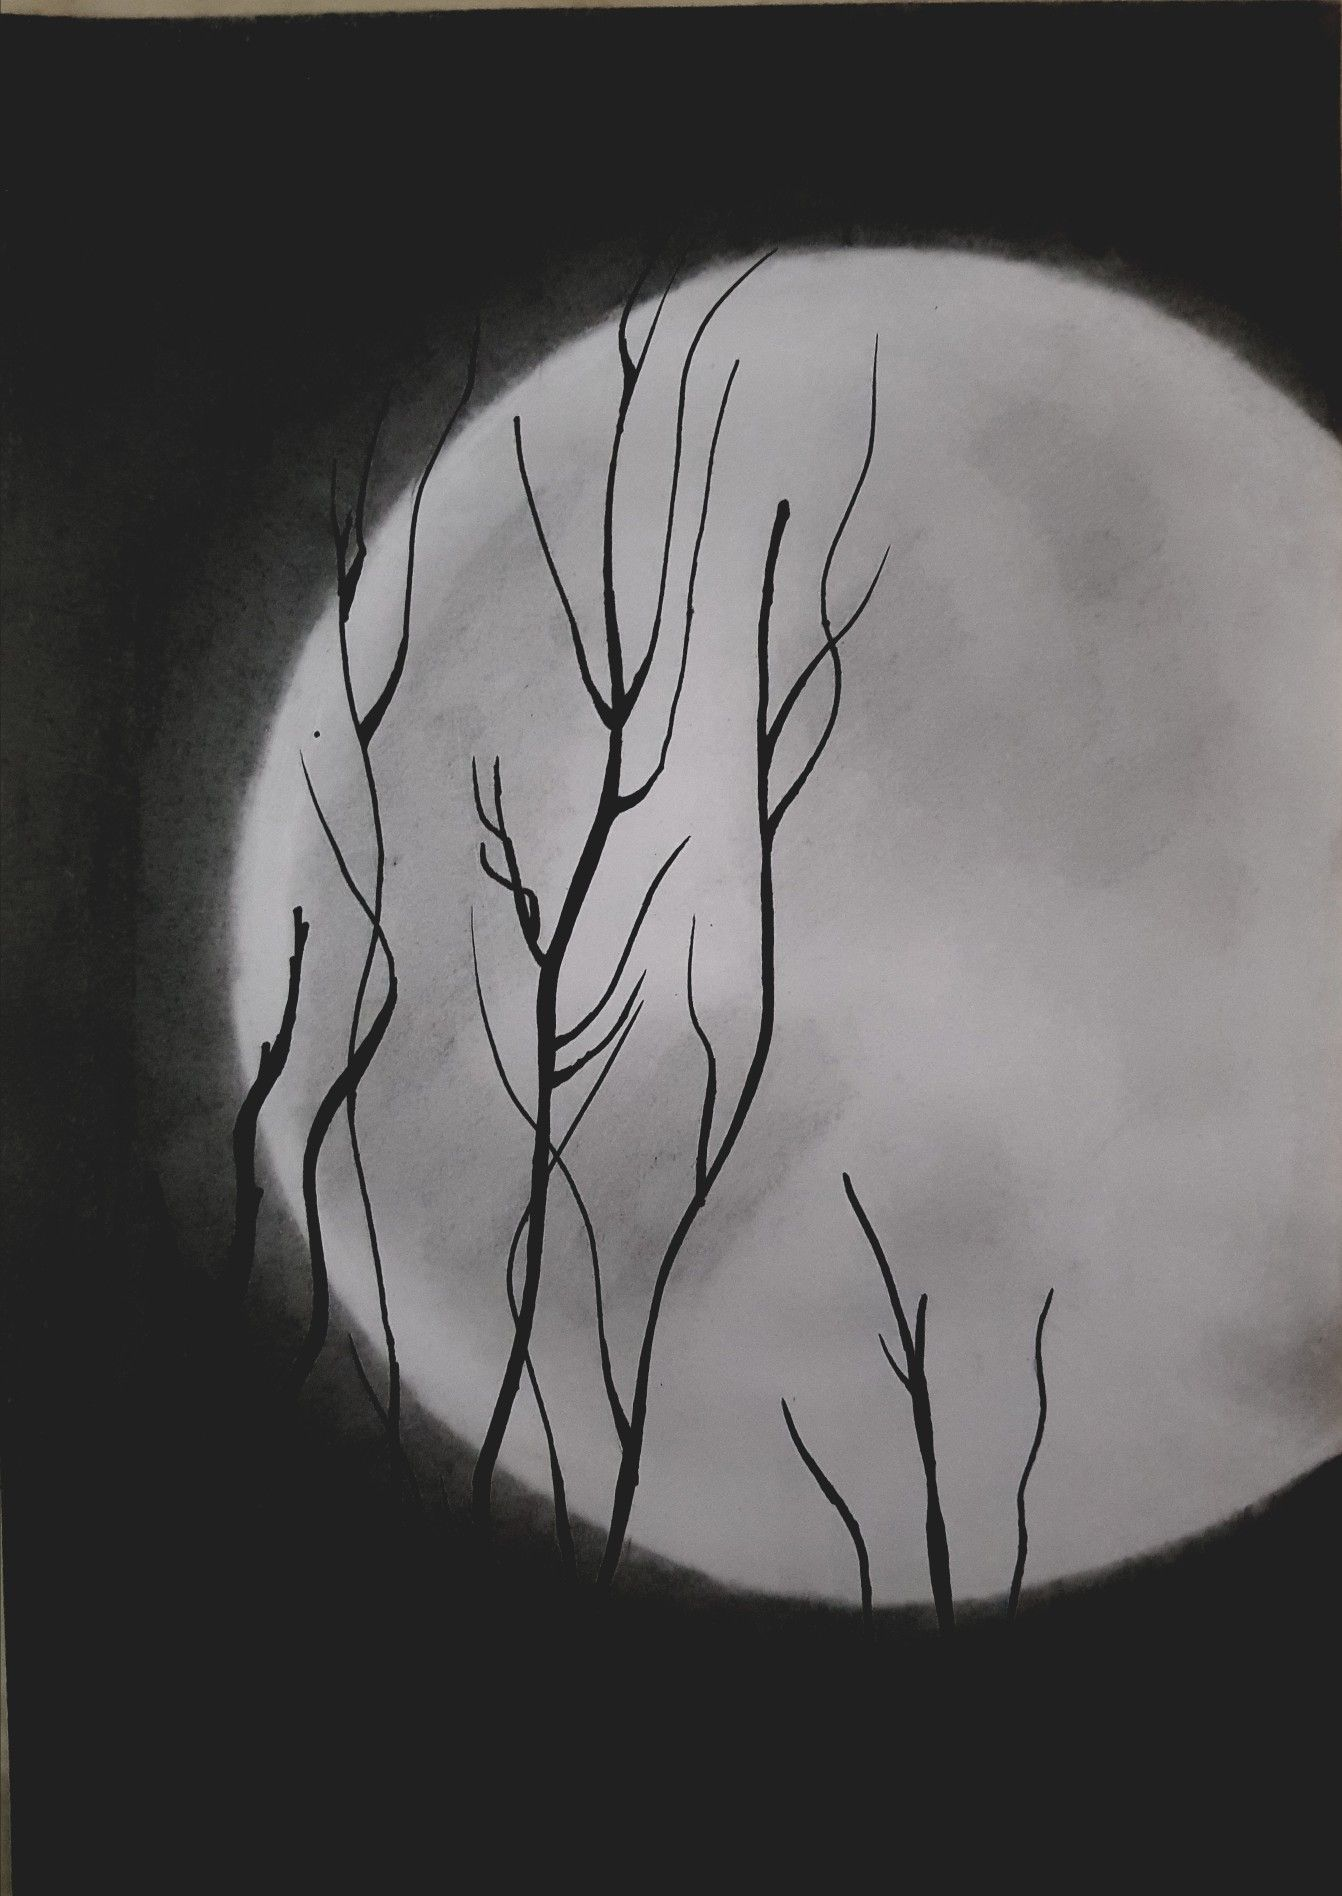 Jungle moon night junglemoon moon sketches learn to sketch pencil art